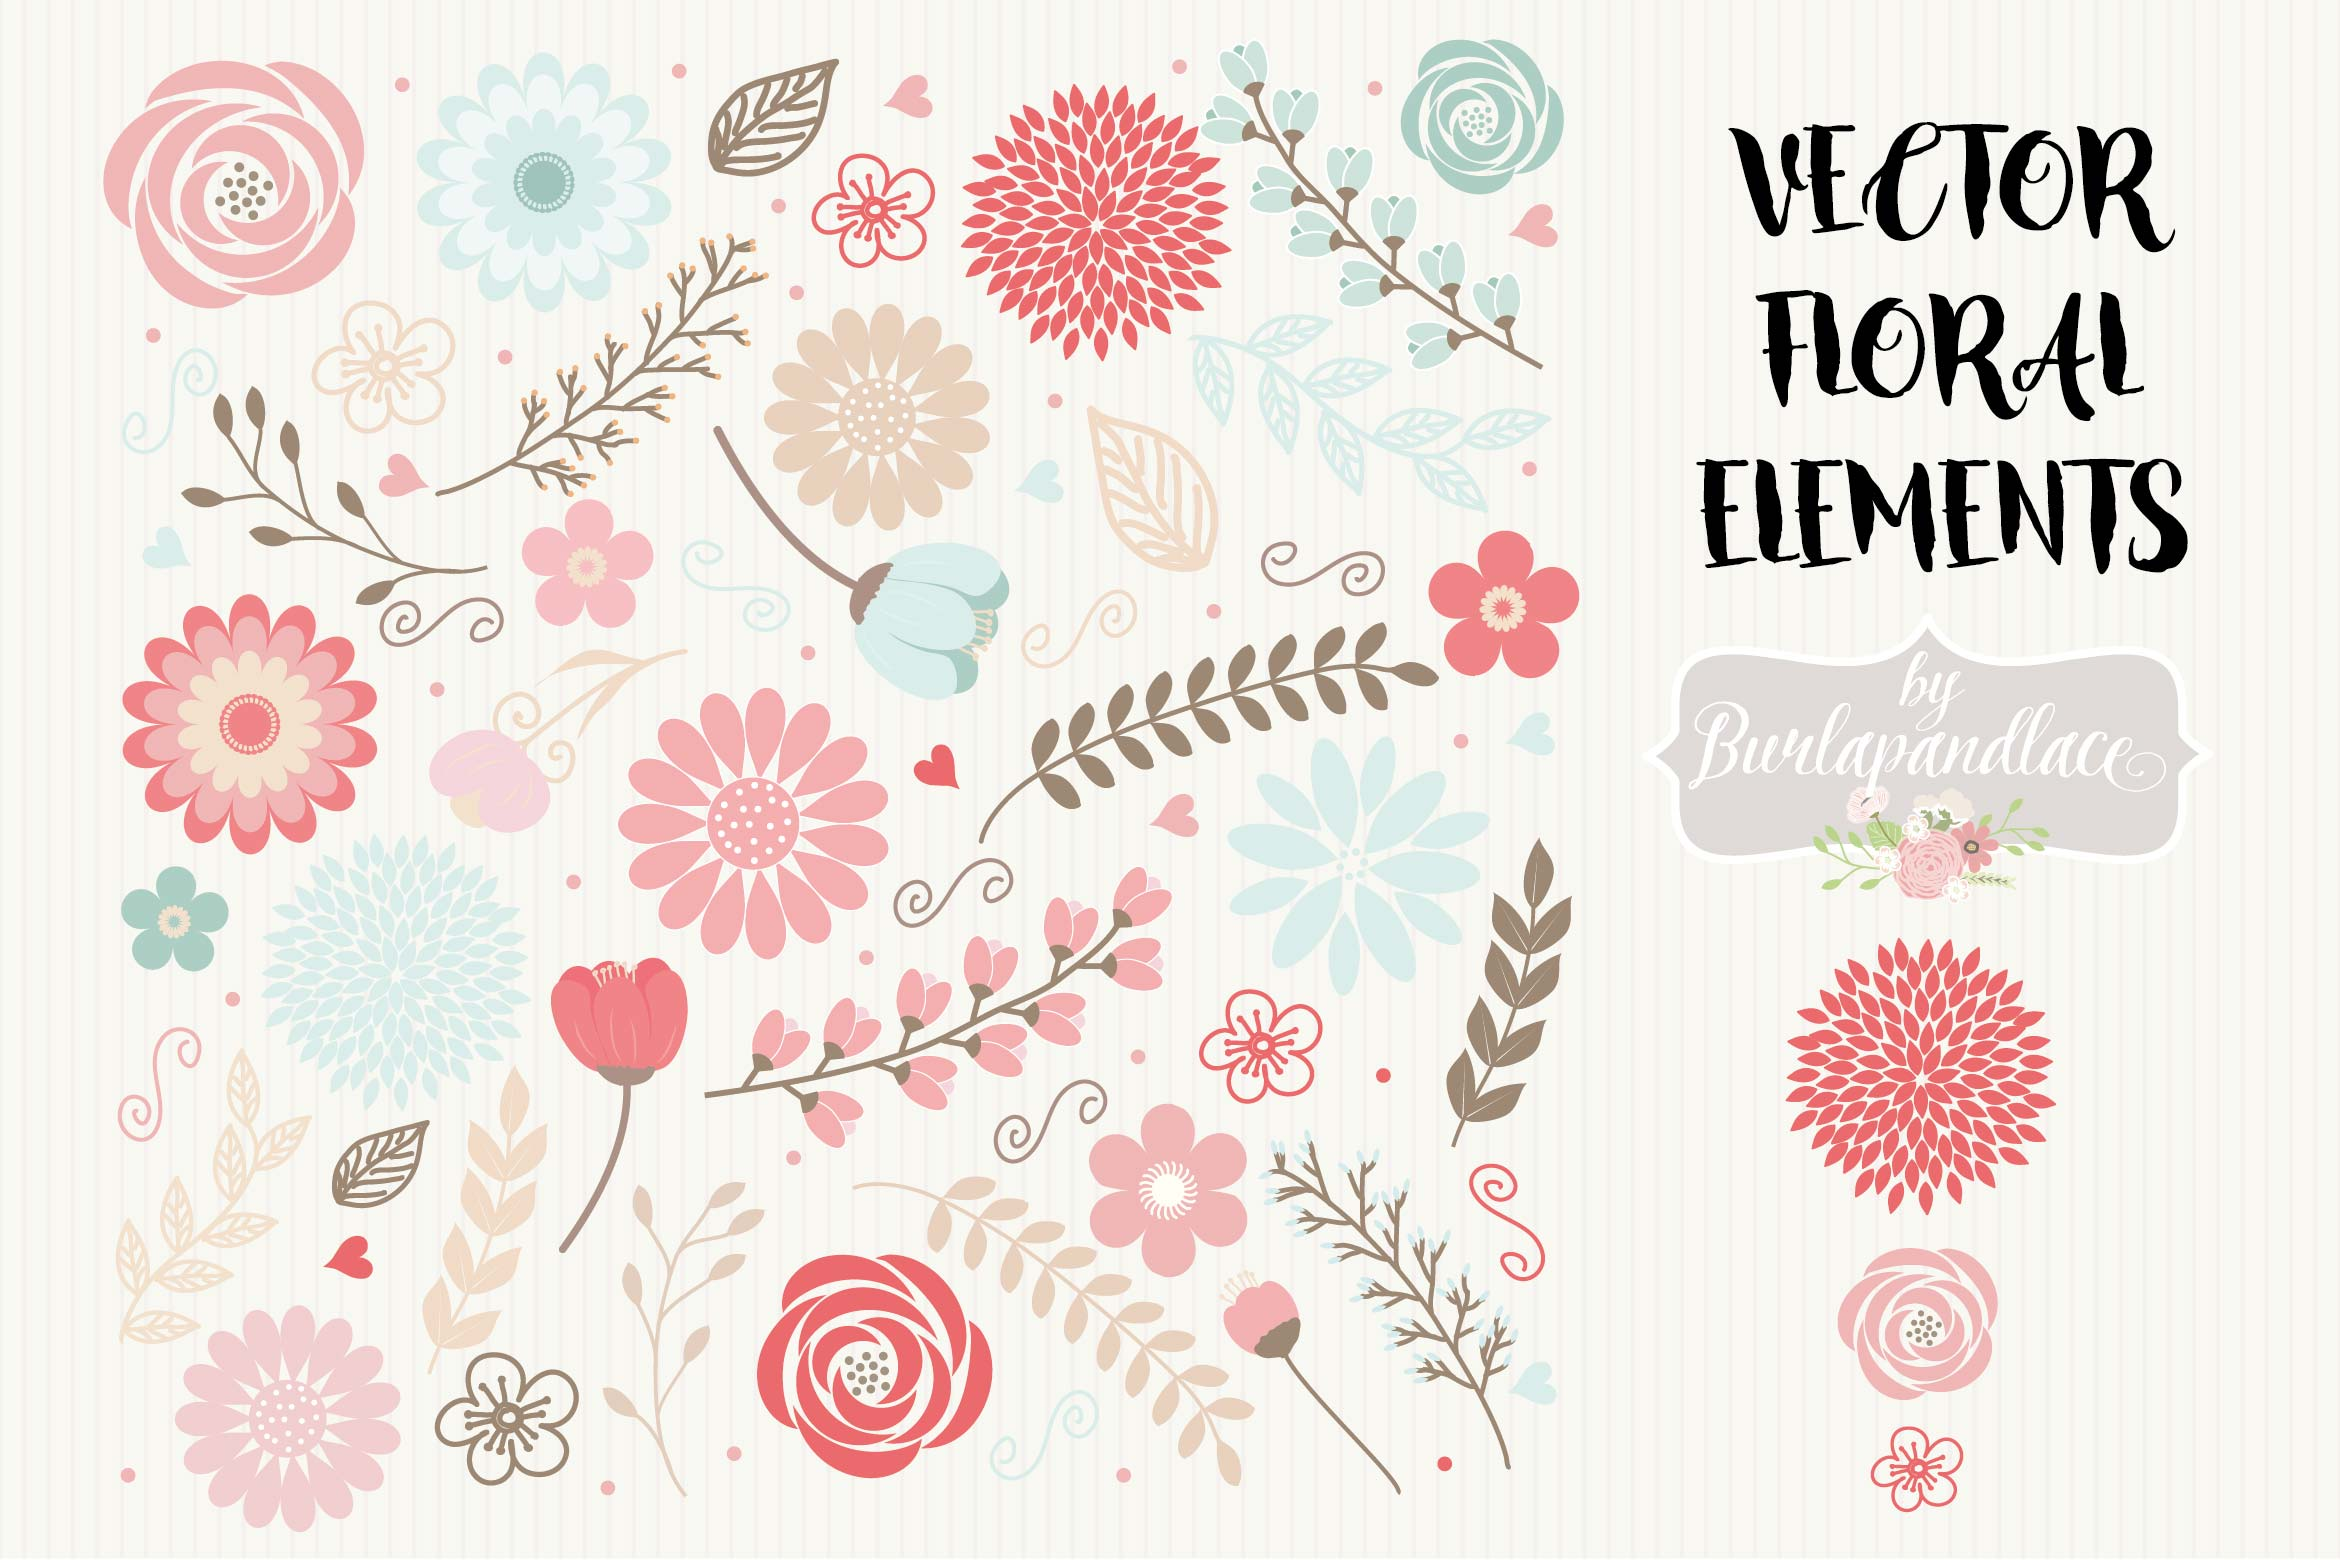 Vector floral elements clipart example image 1